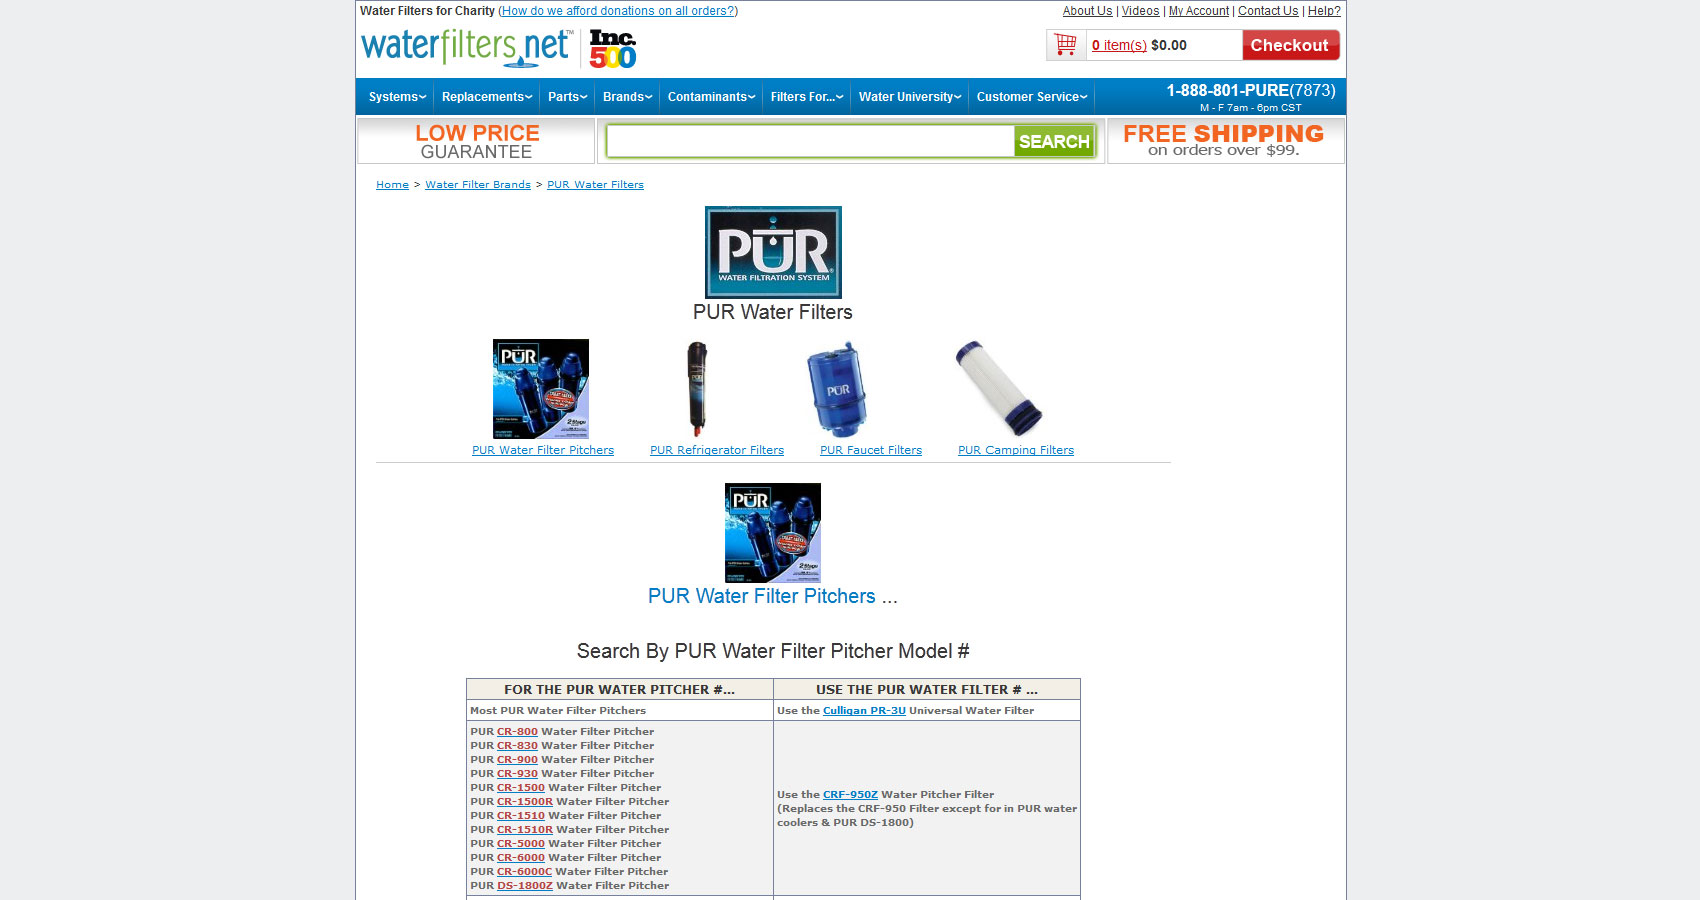 PUR Water Filters